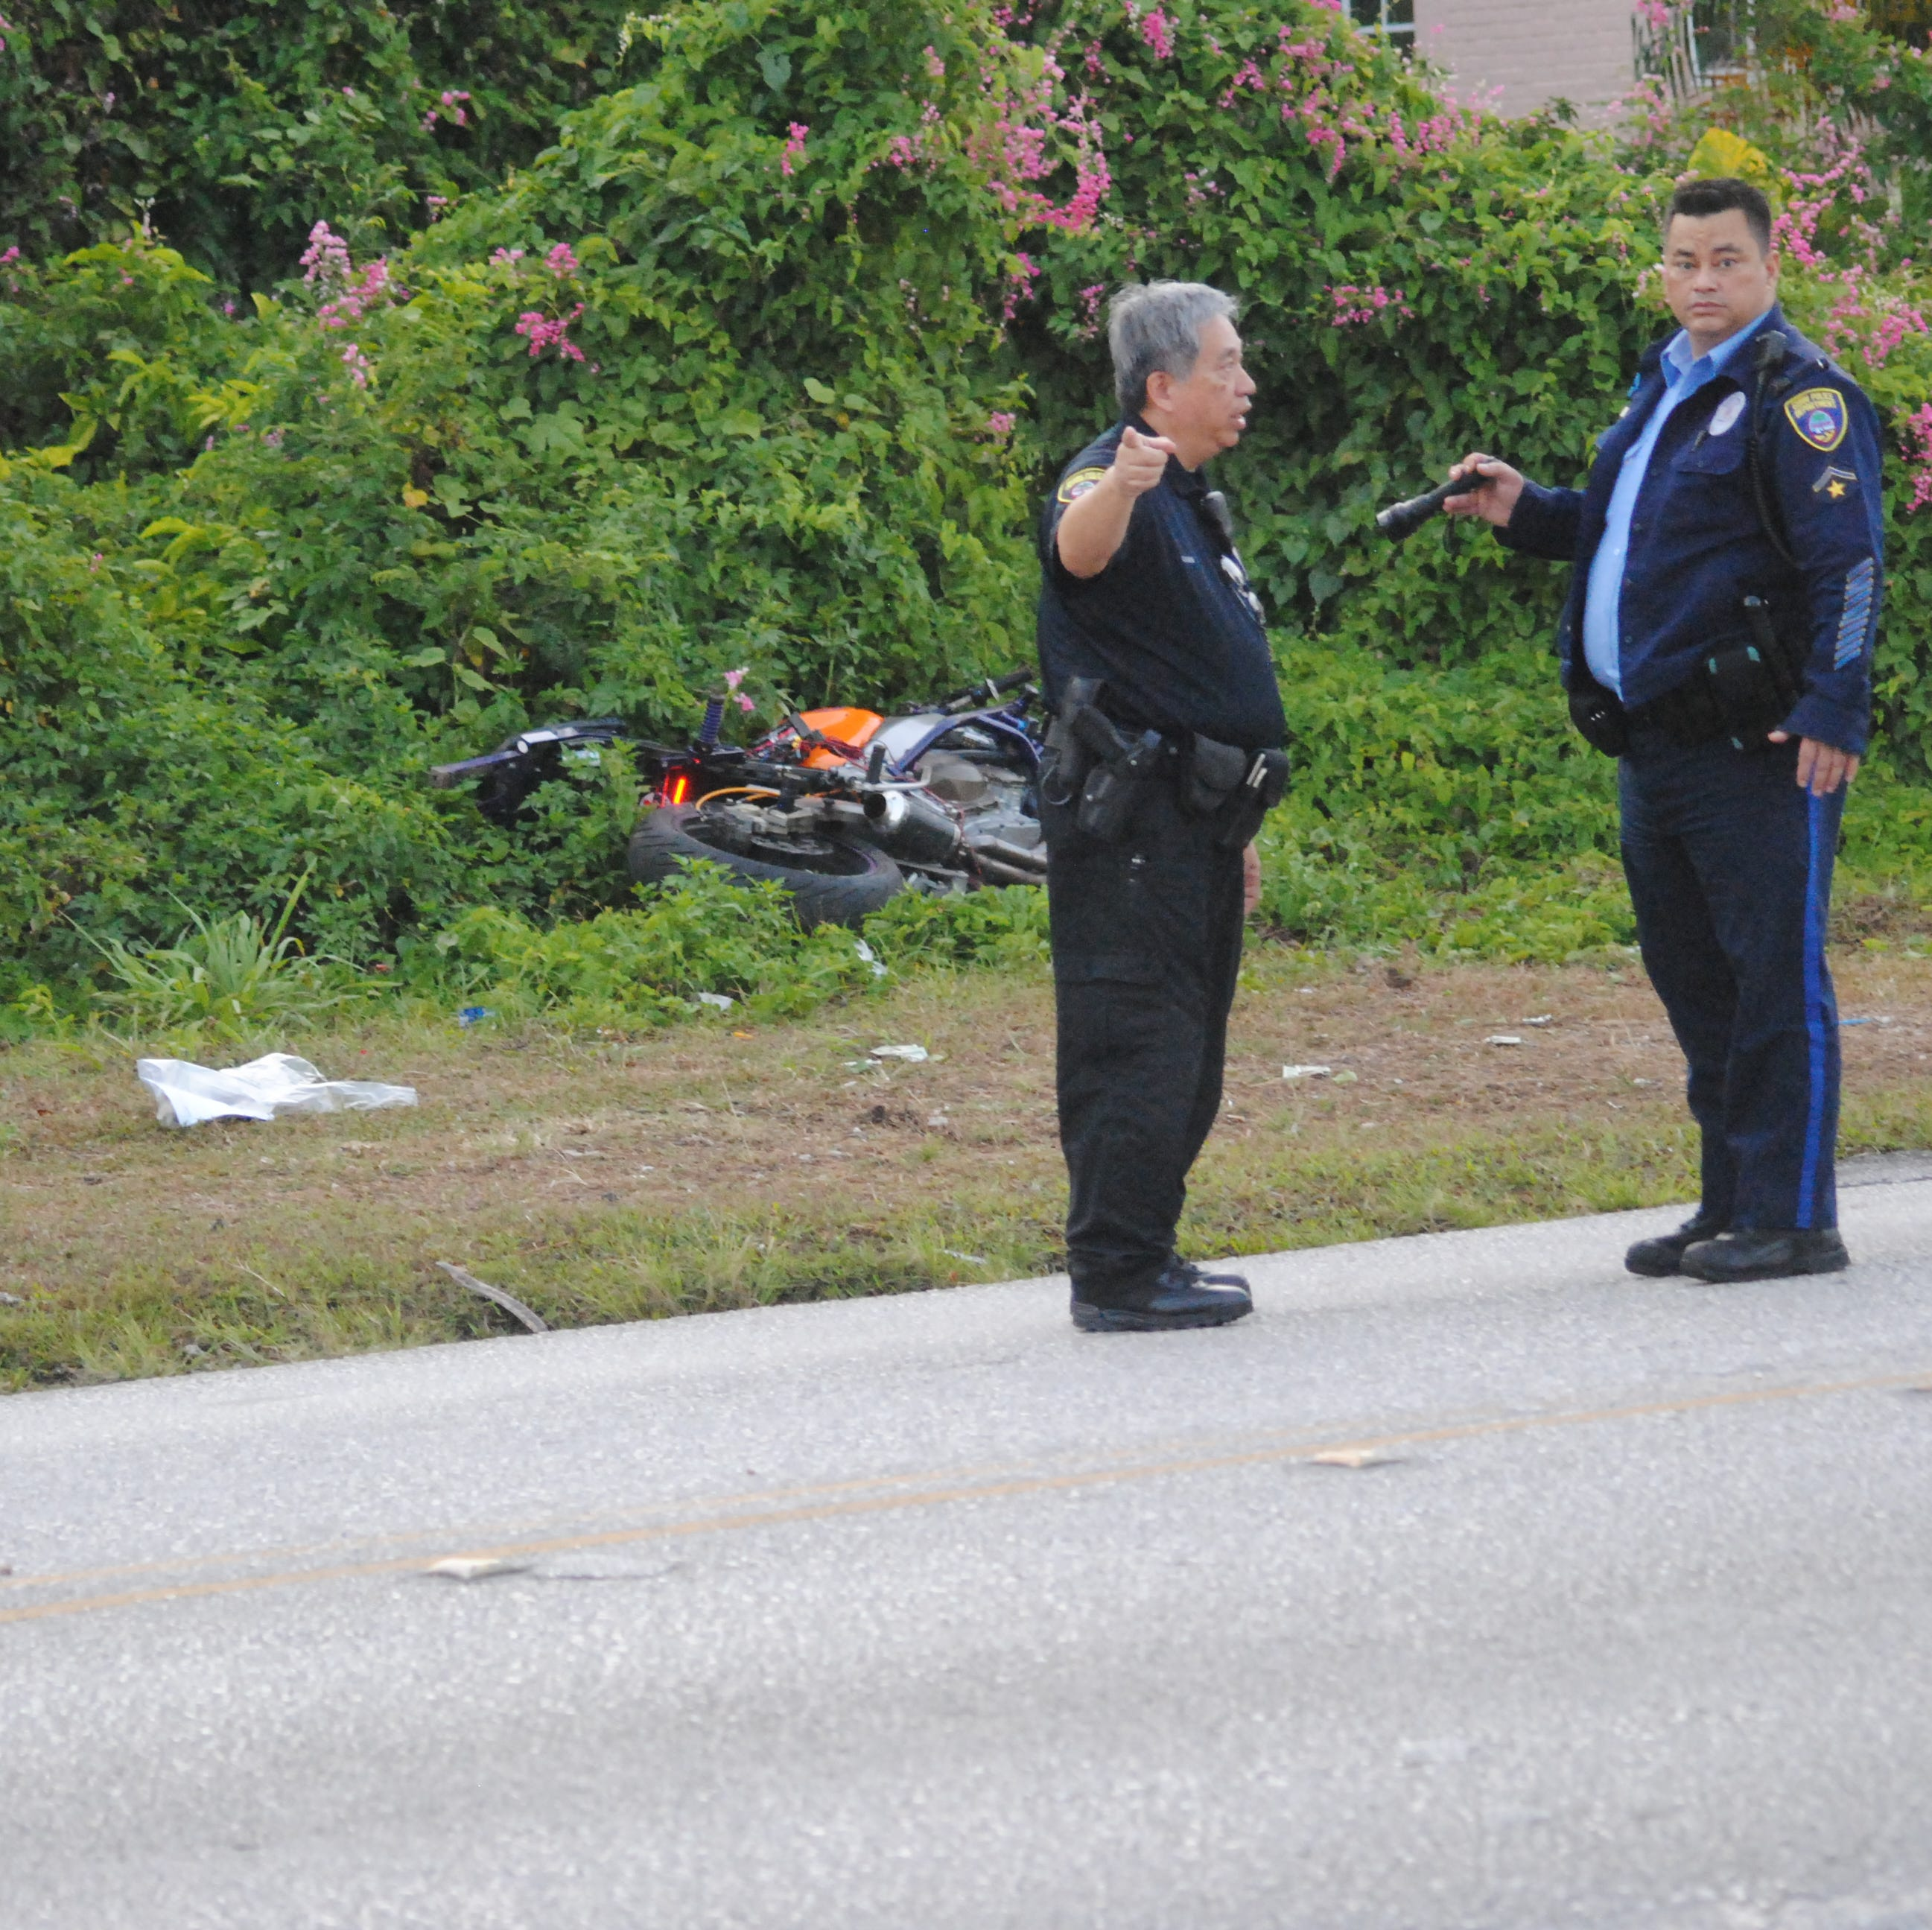 Motorcycle crash on Ypao Road leaves 41-year-old man in critical condition